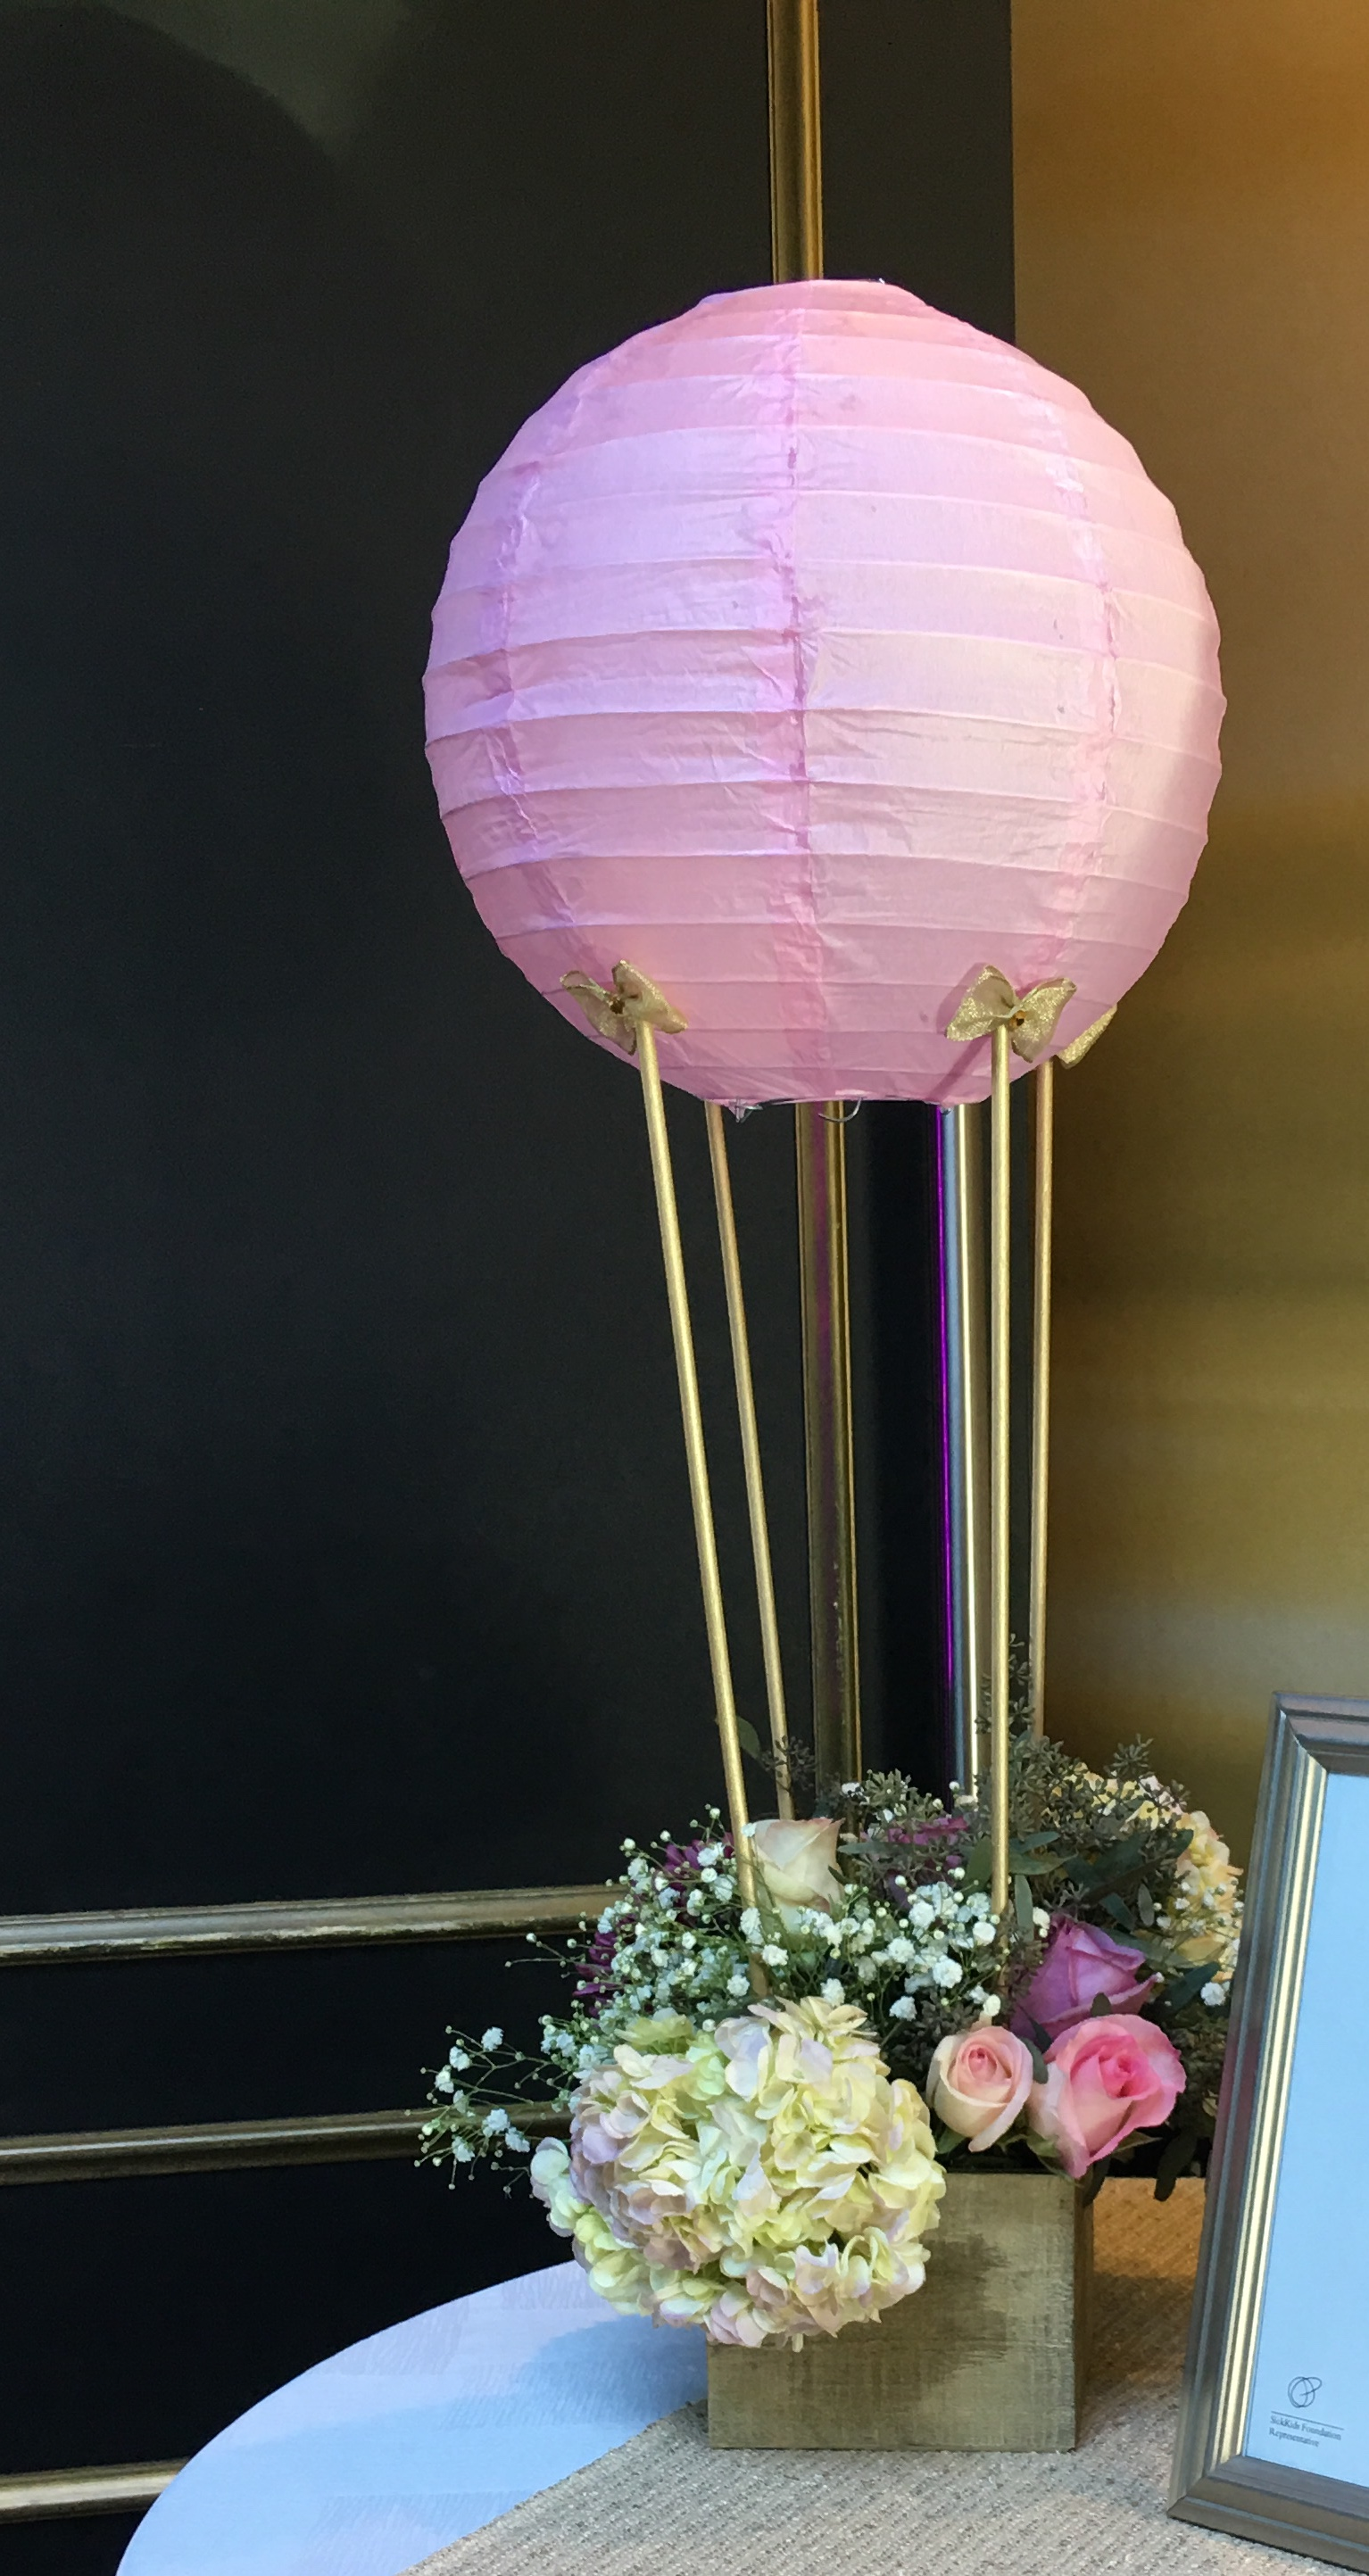 Hot air balloon centerpiece with flowers